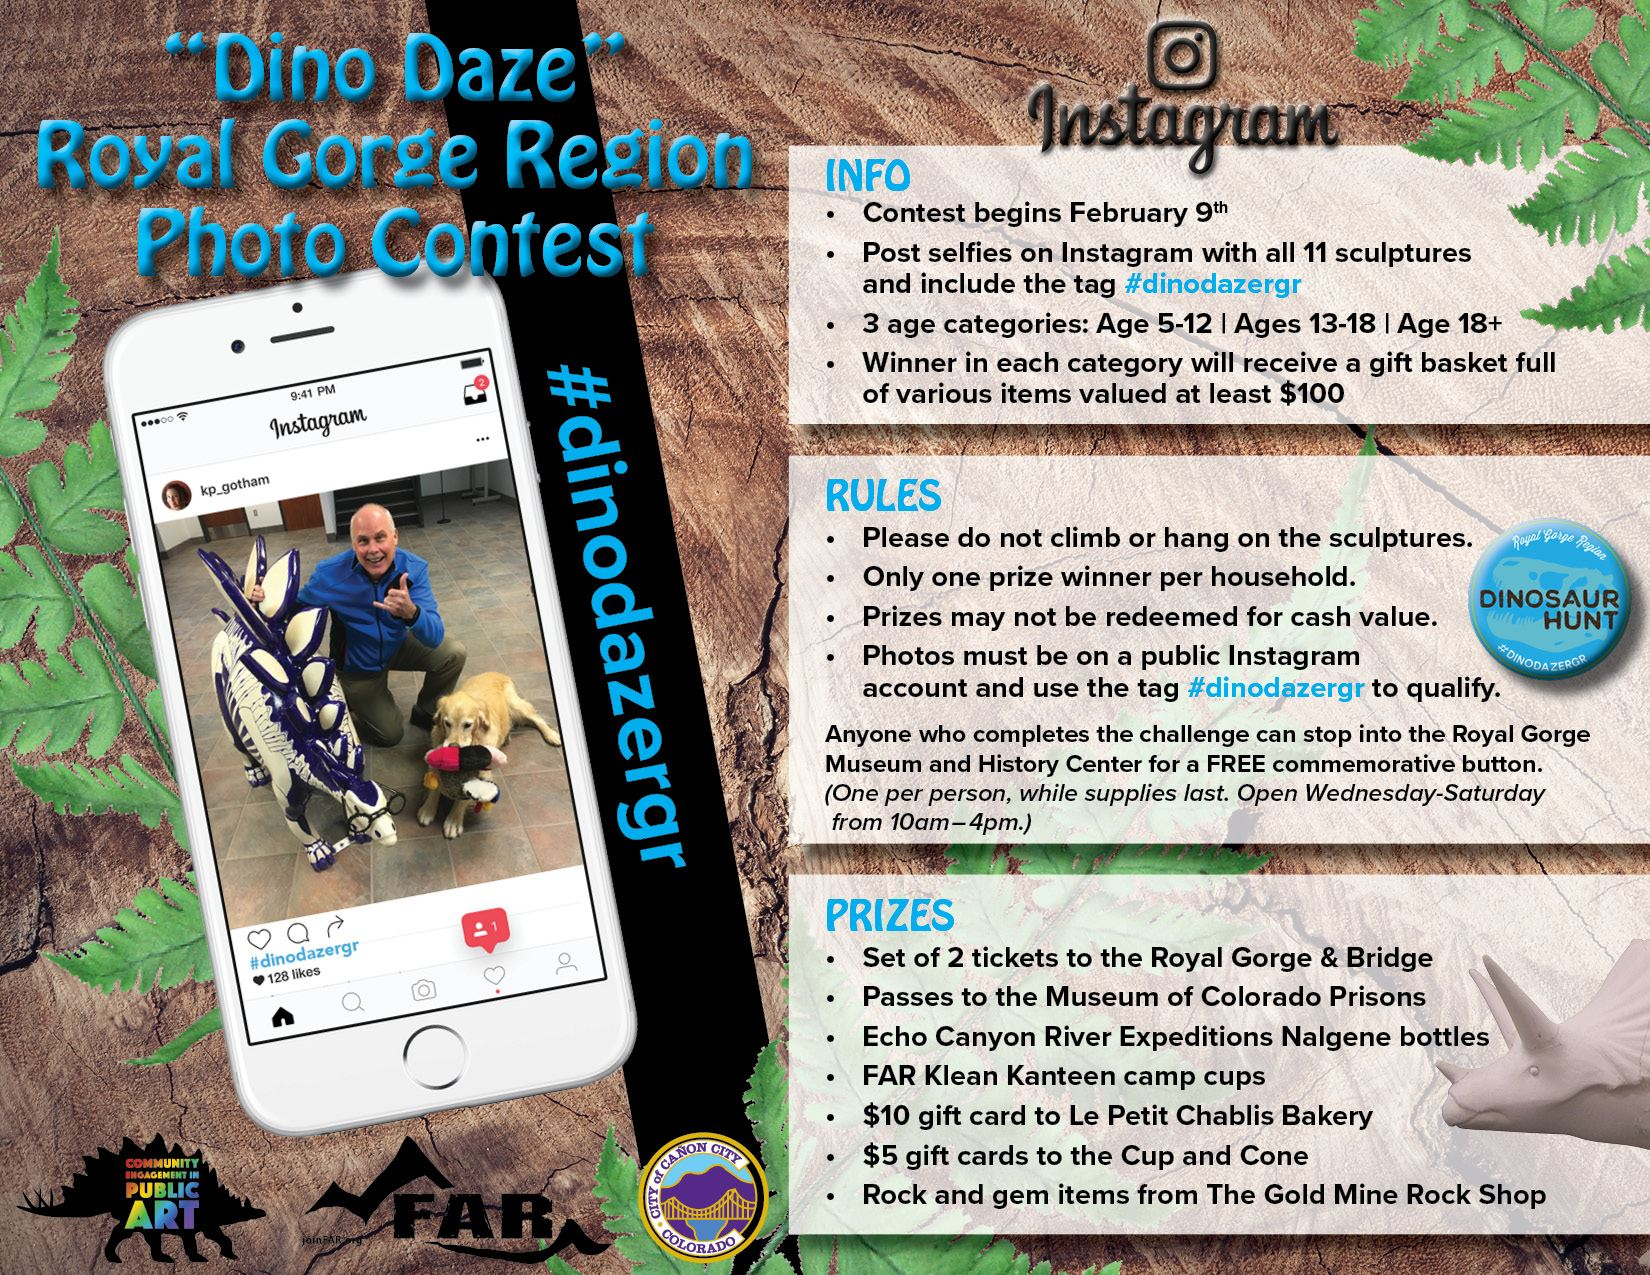 Dino Daze Instagram Photo Contest Flyer